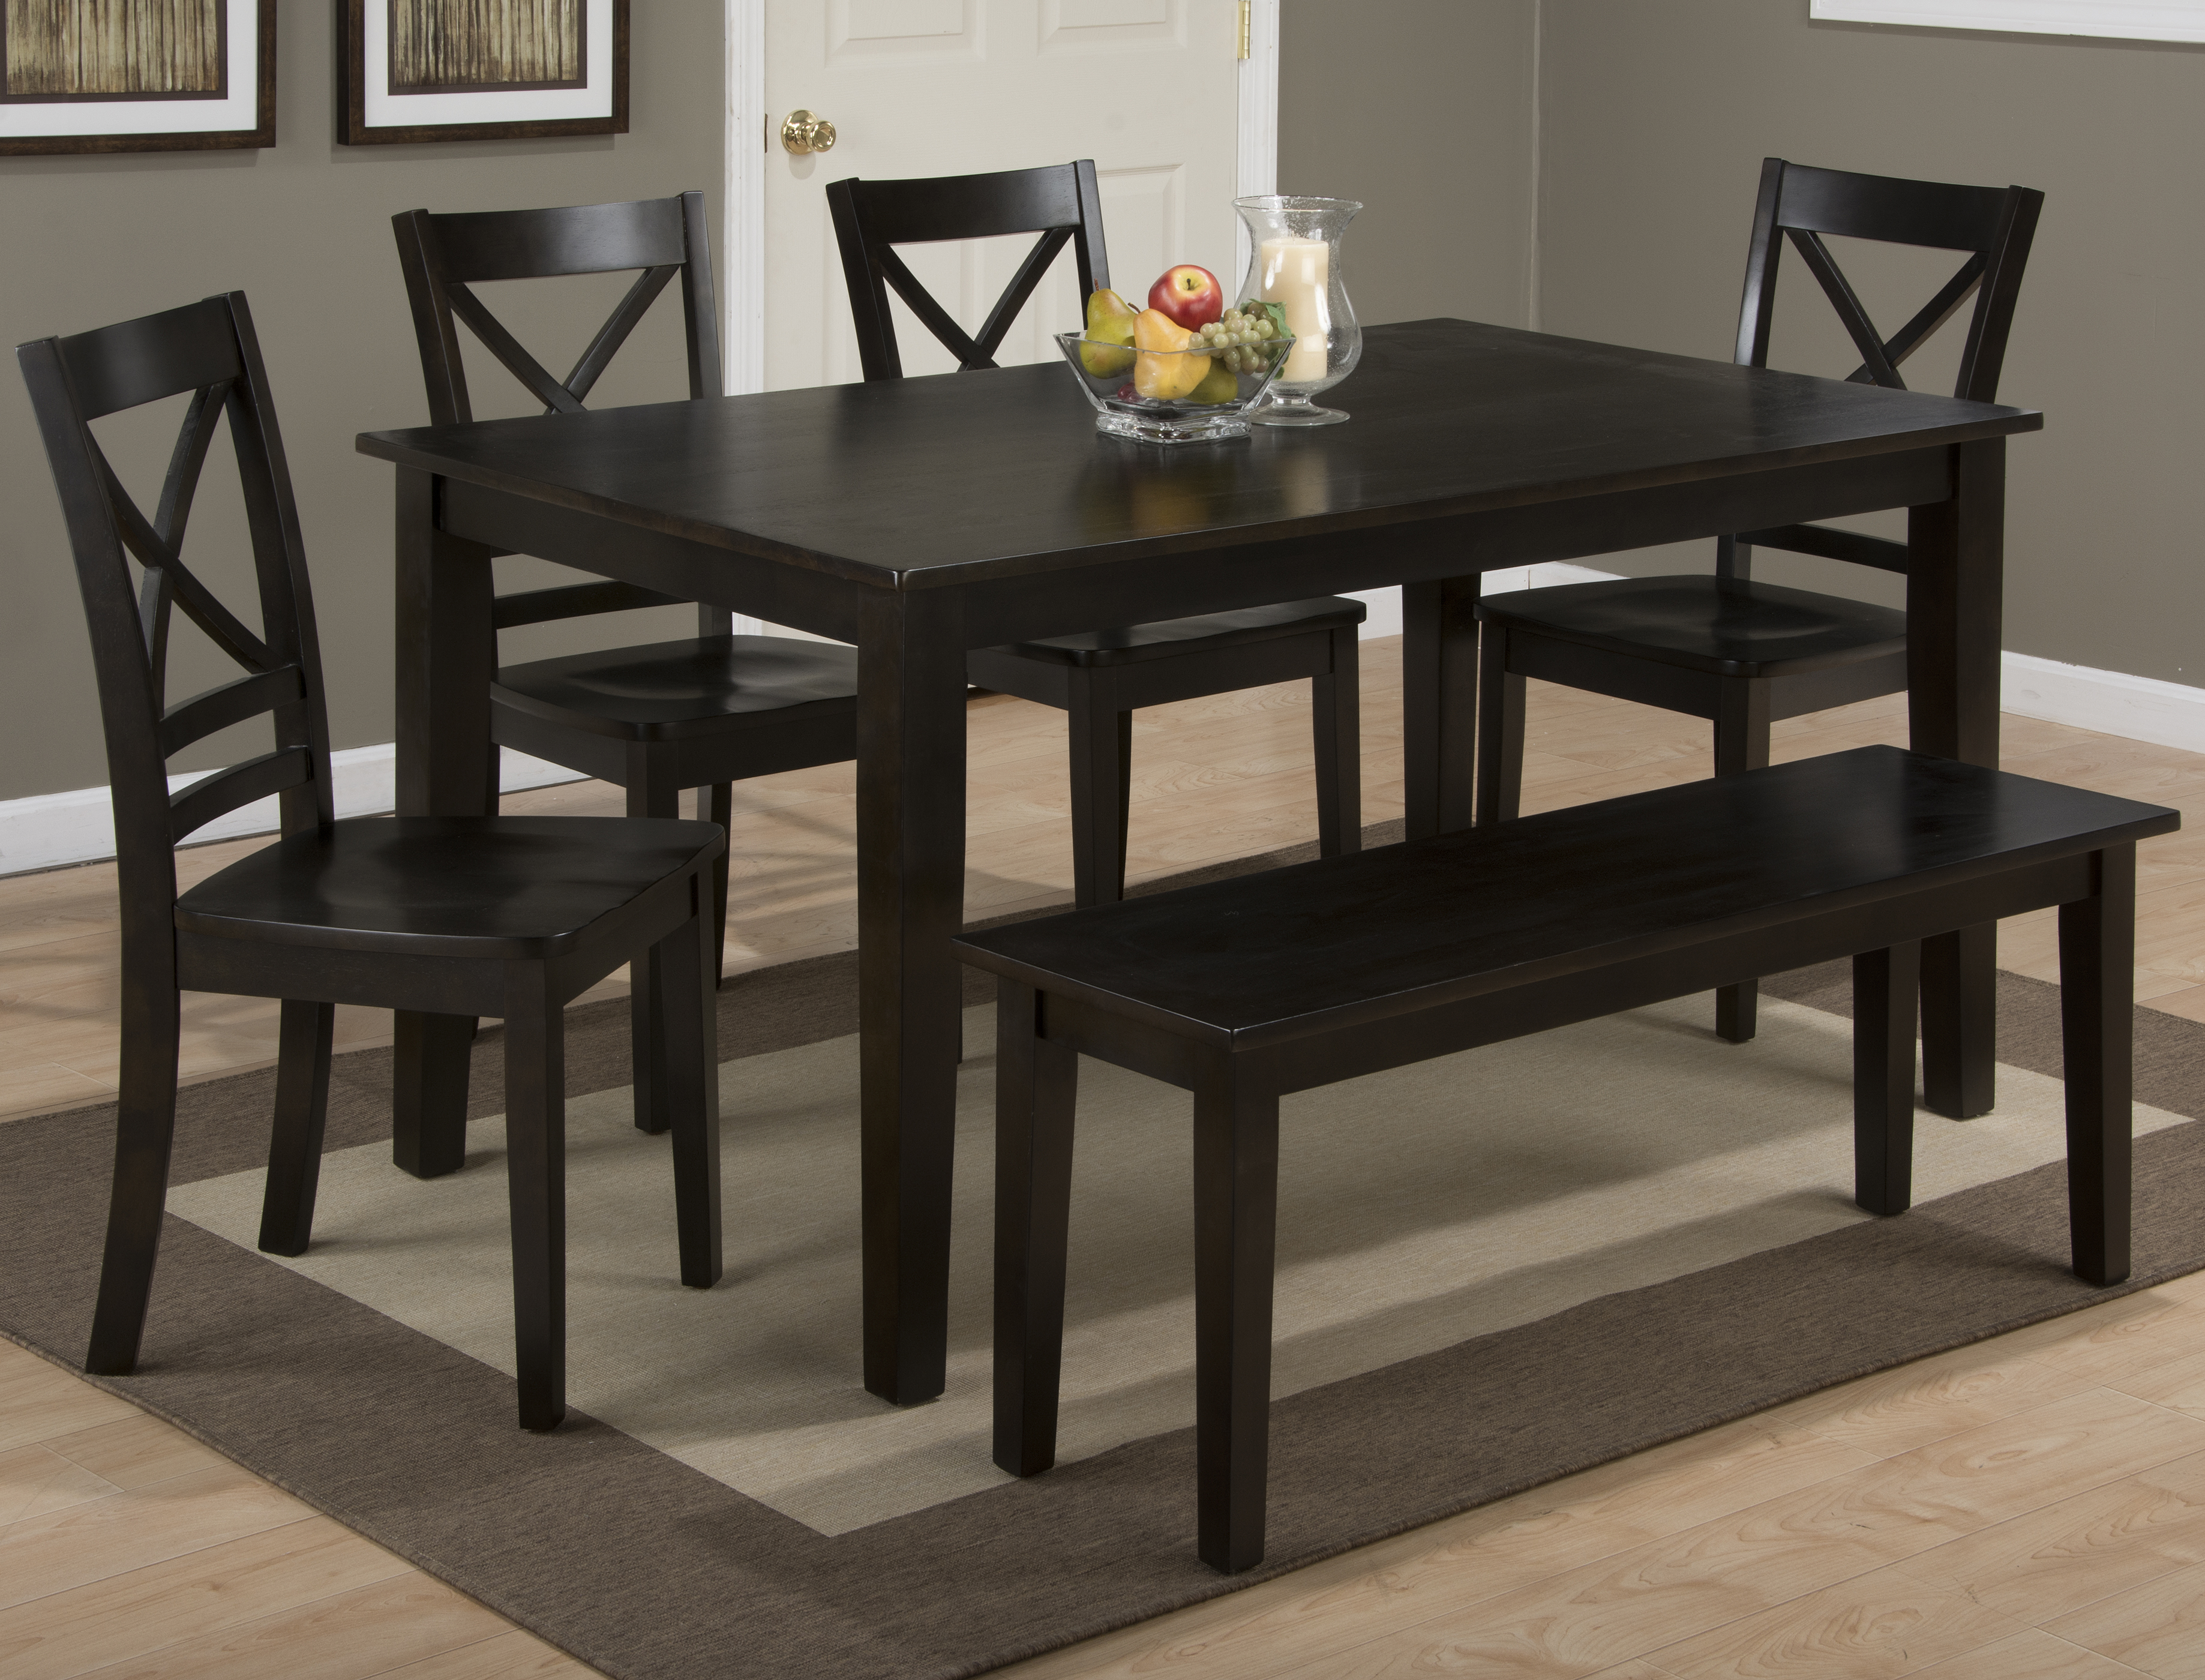 Dining Room Furniture Cary Nc Tables Chairs Cabinets